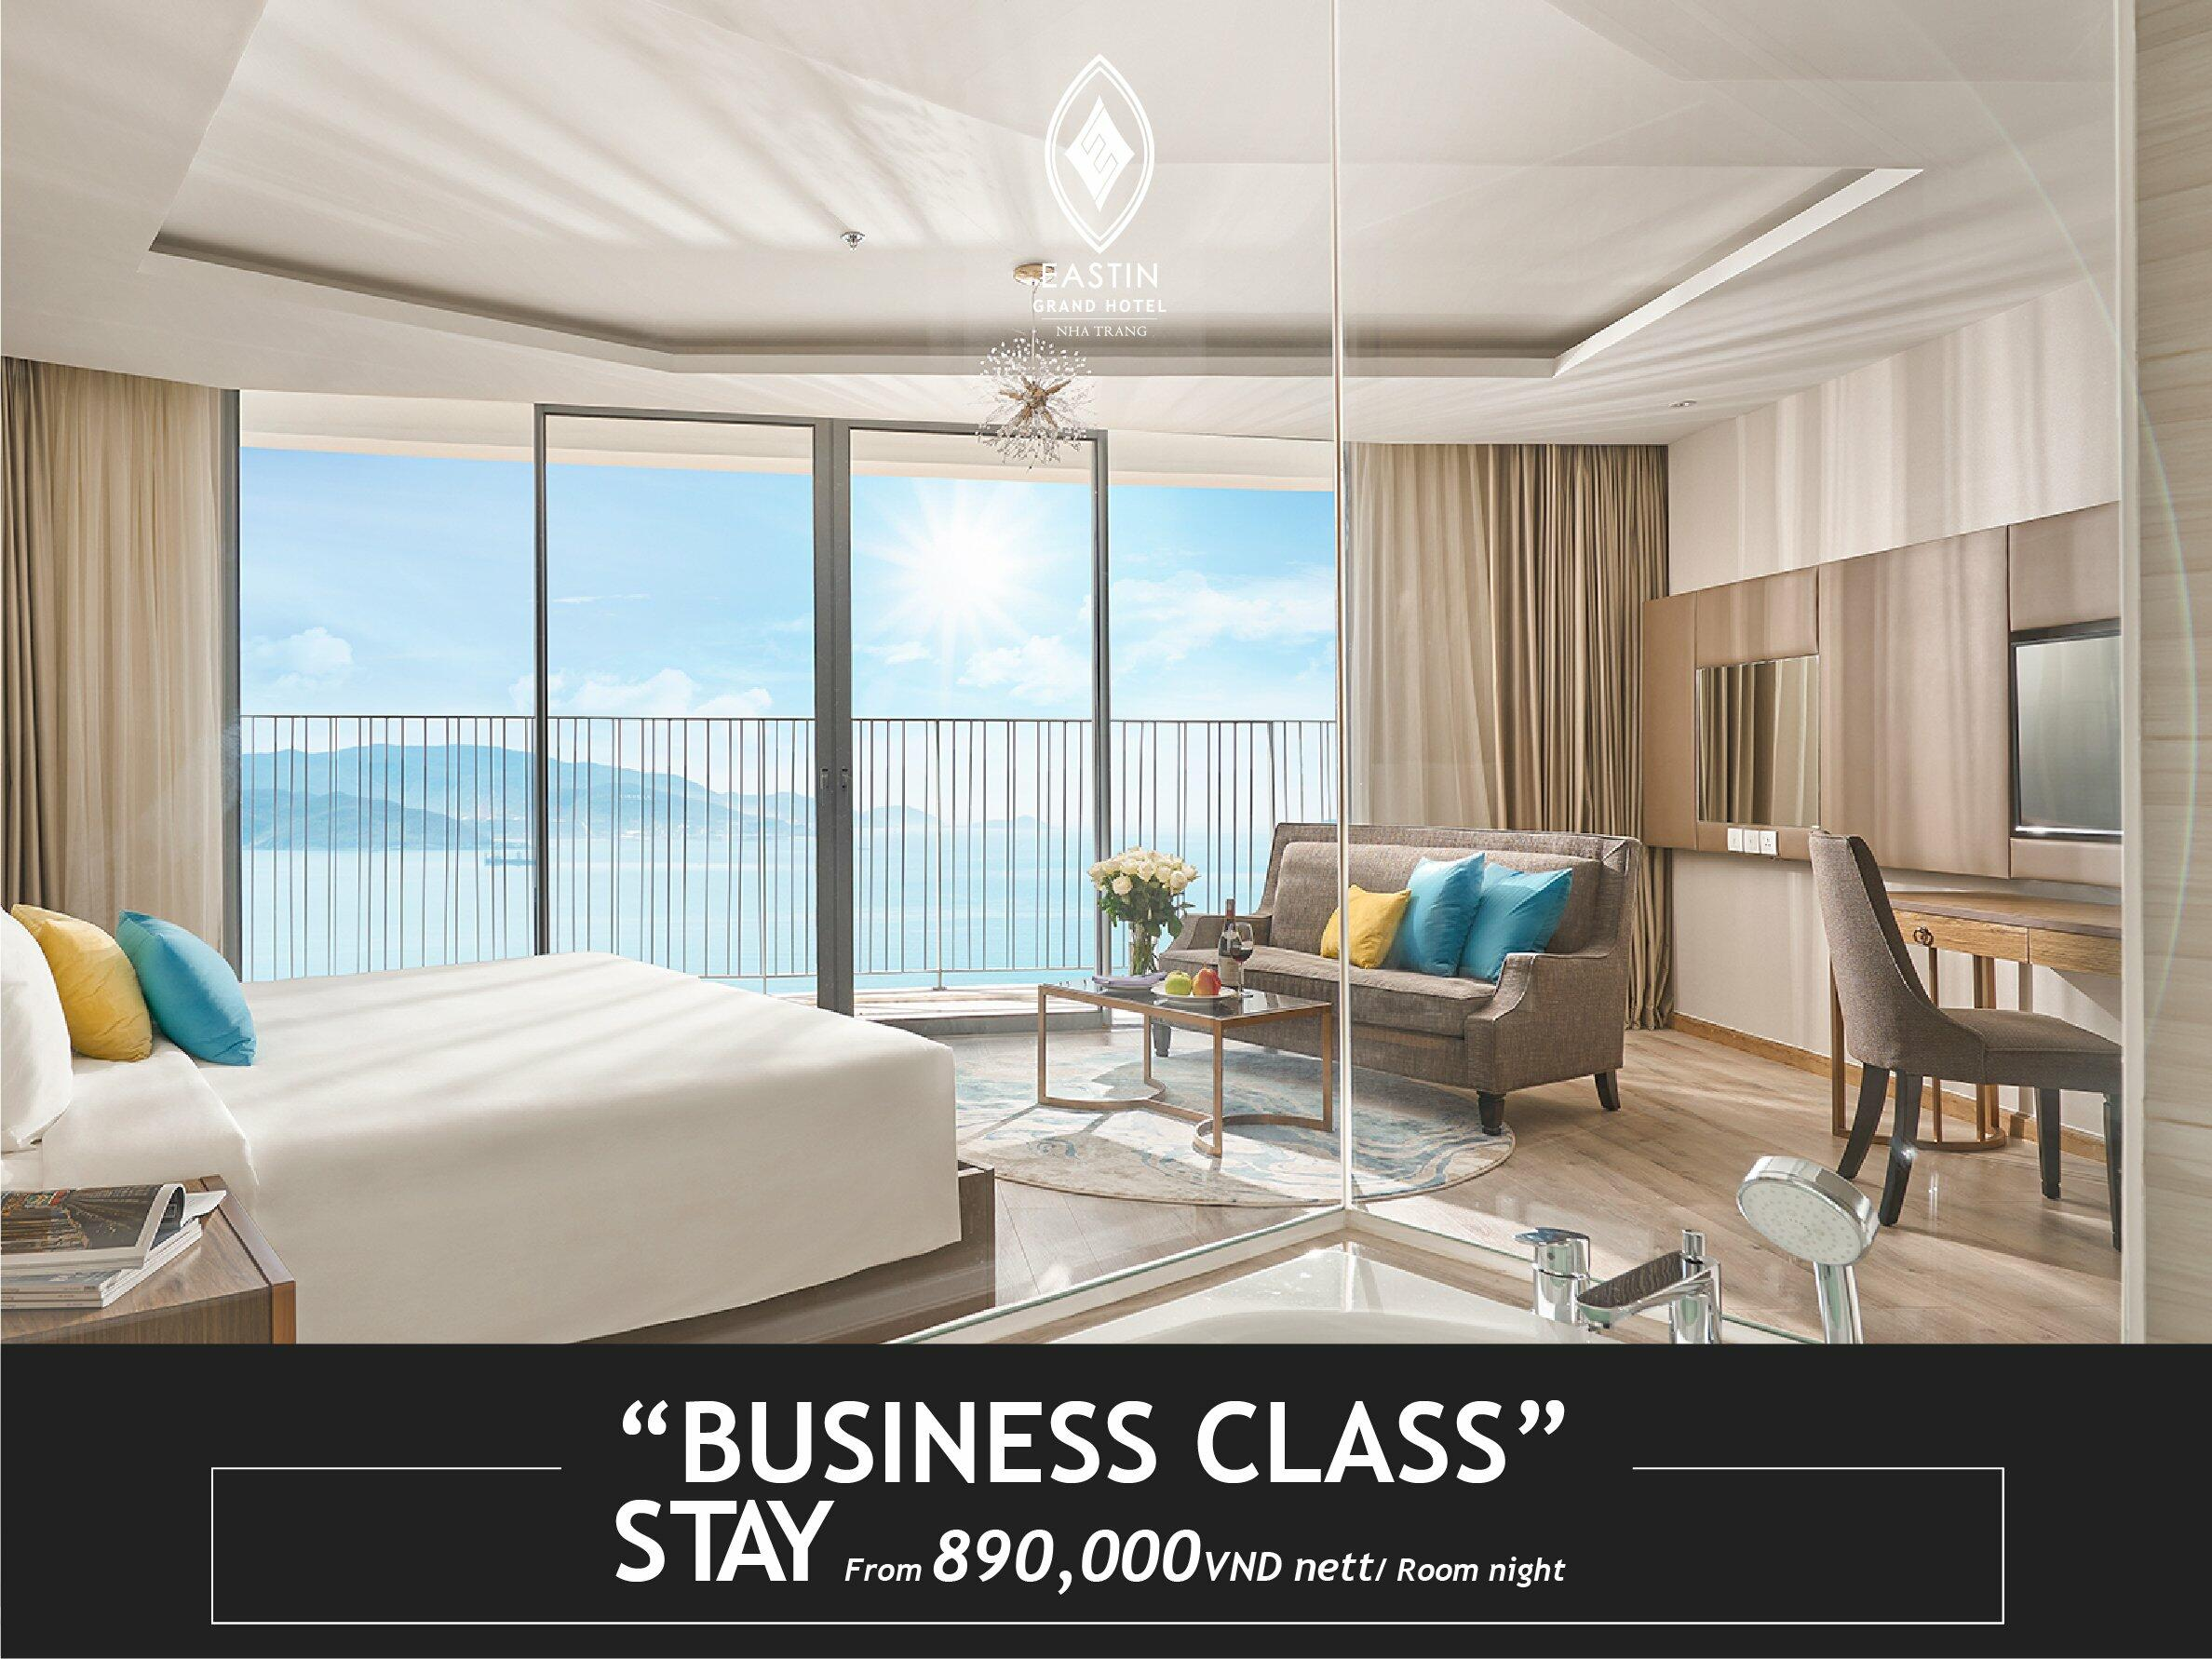 Business Class Stay  - Eastin Hotel